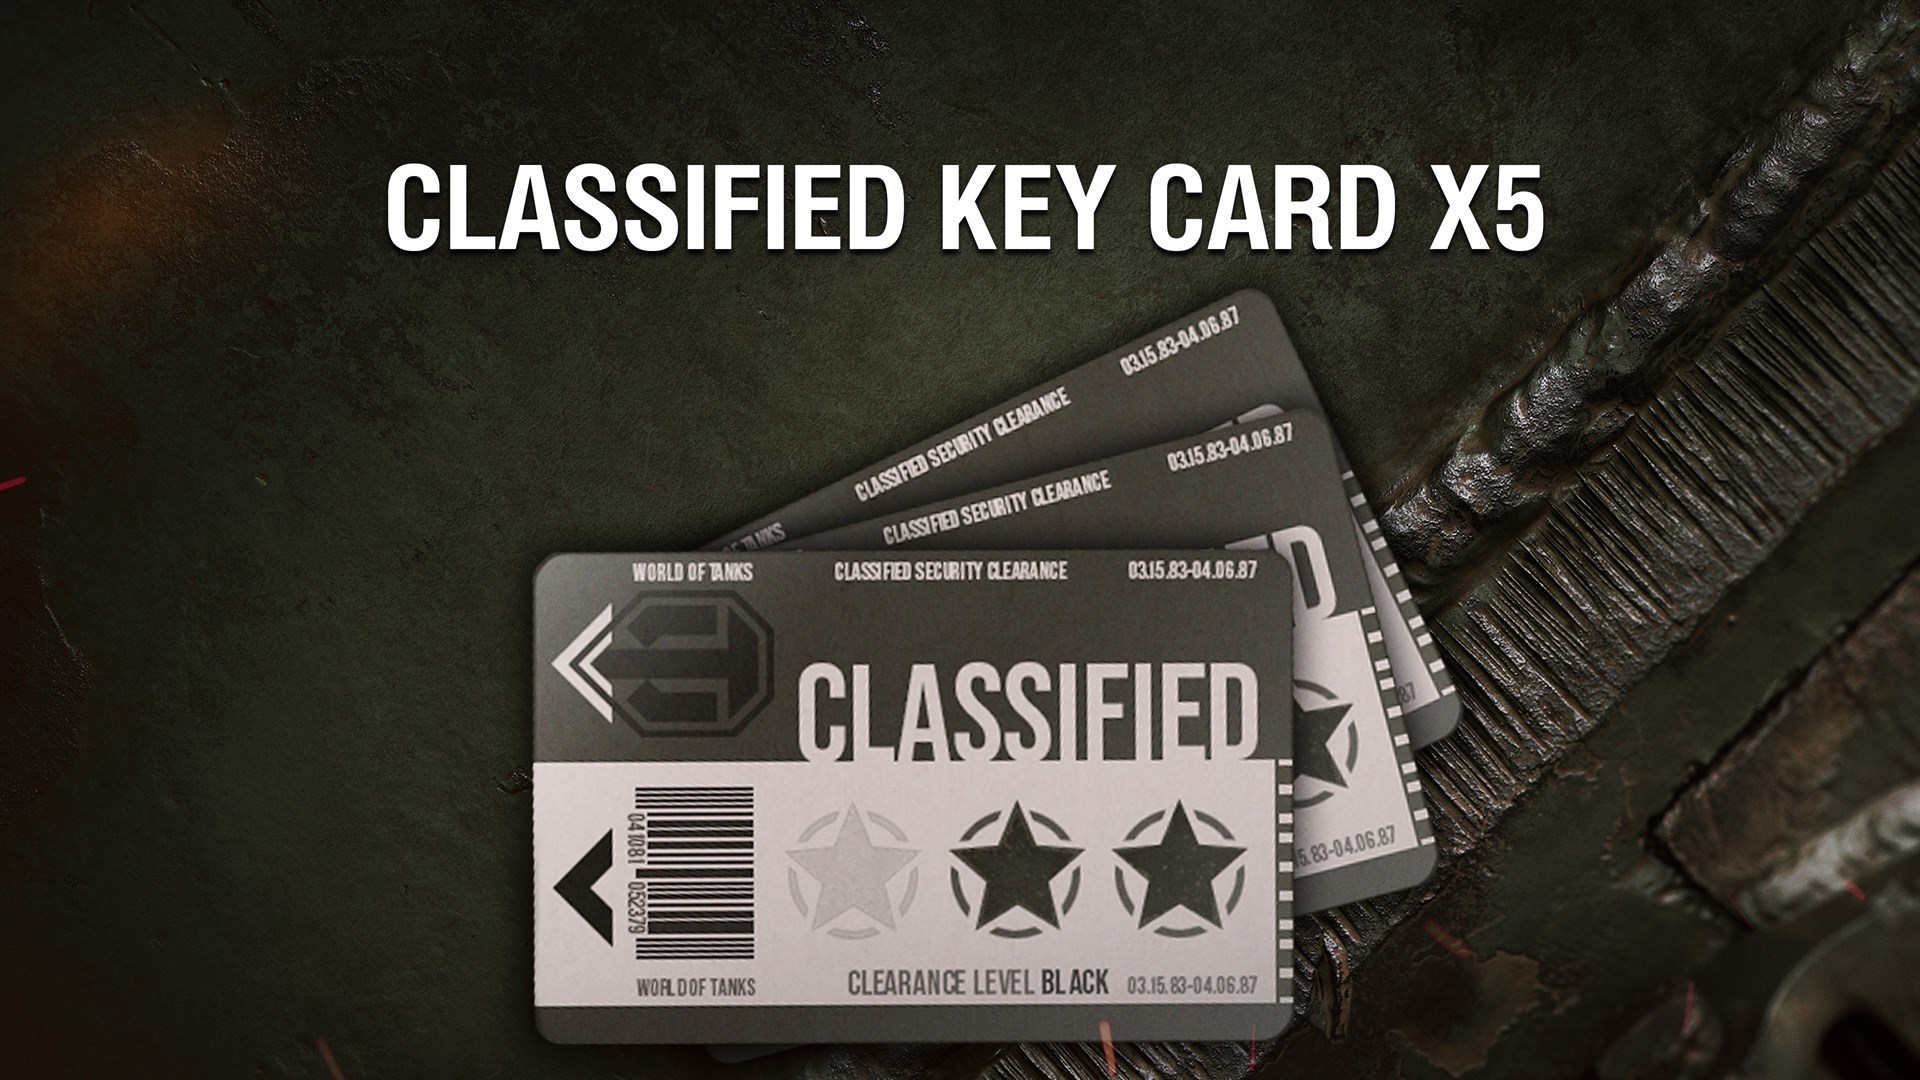 World of Tanks - 5 Classified Key Cards